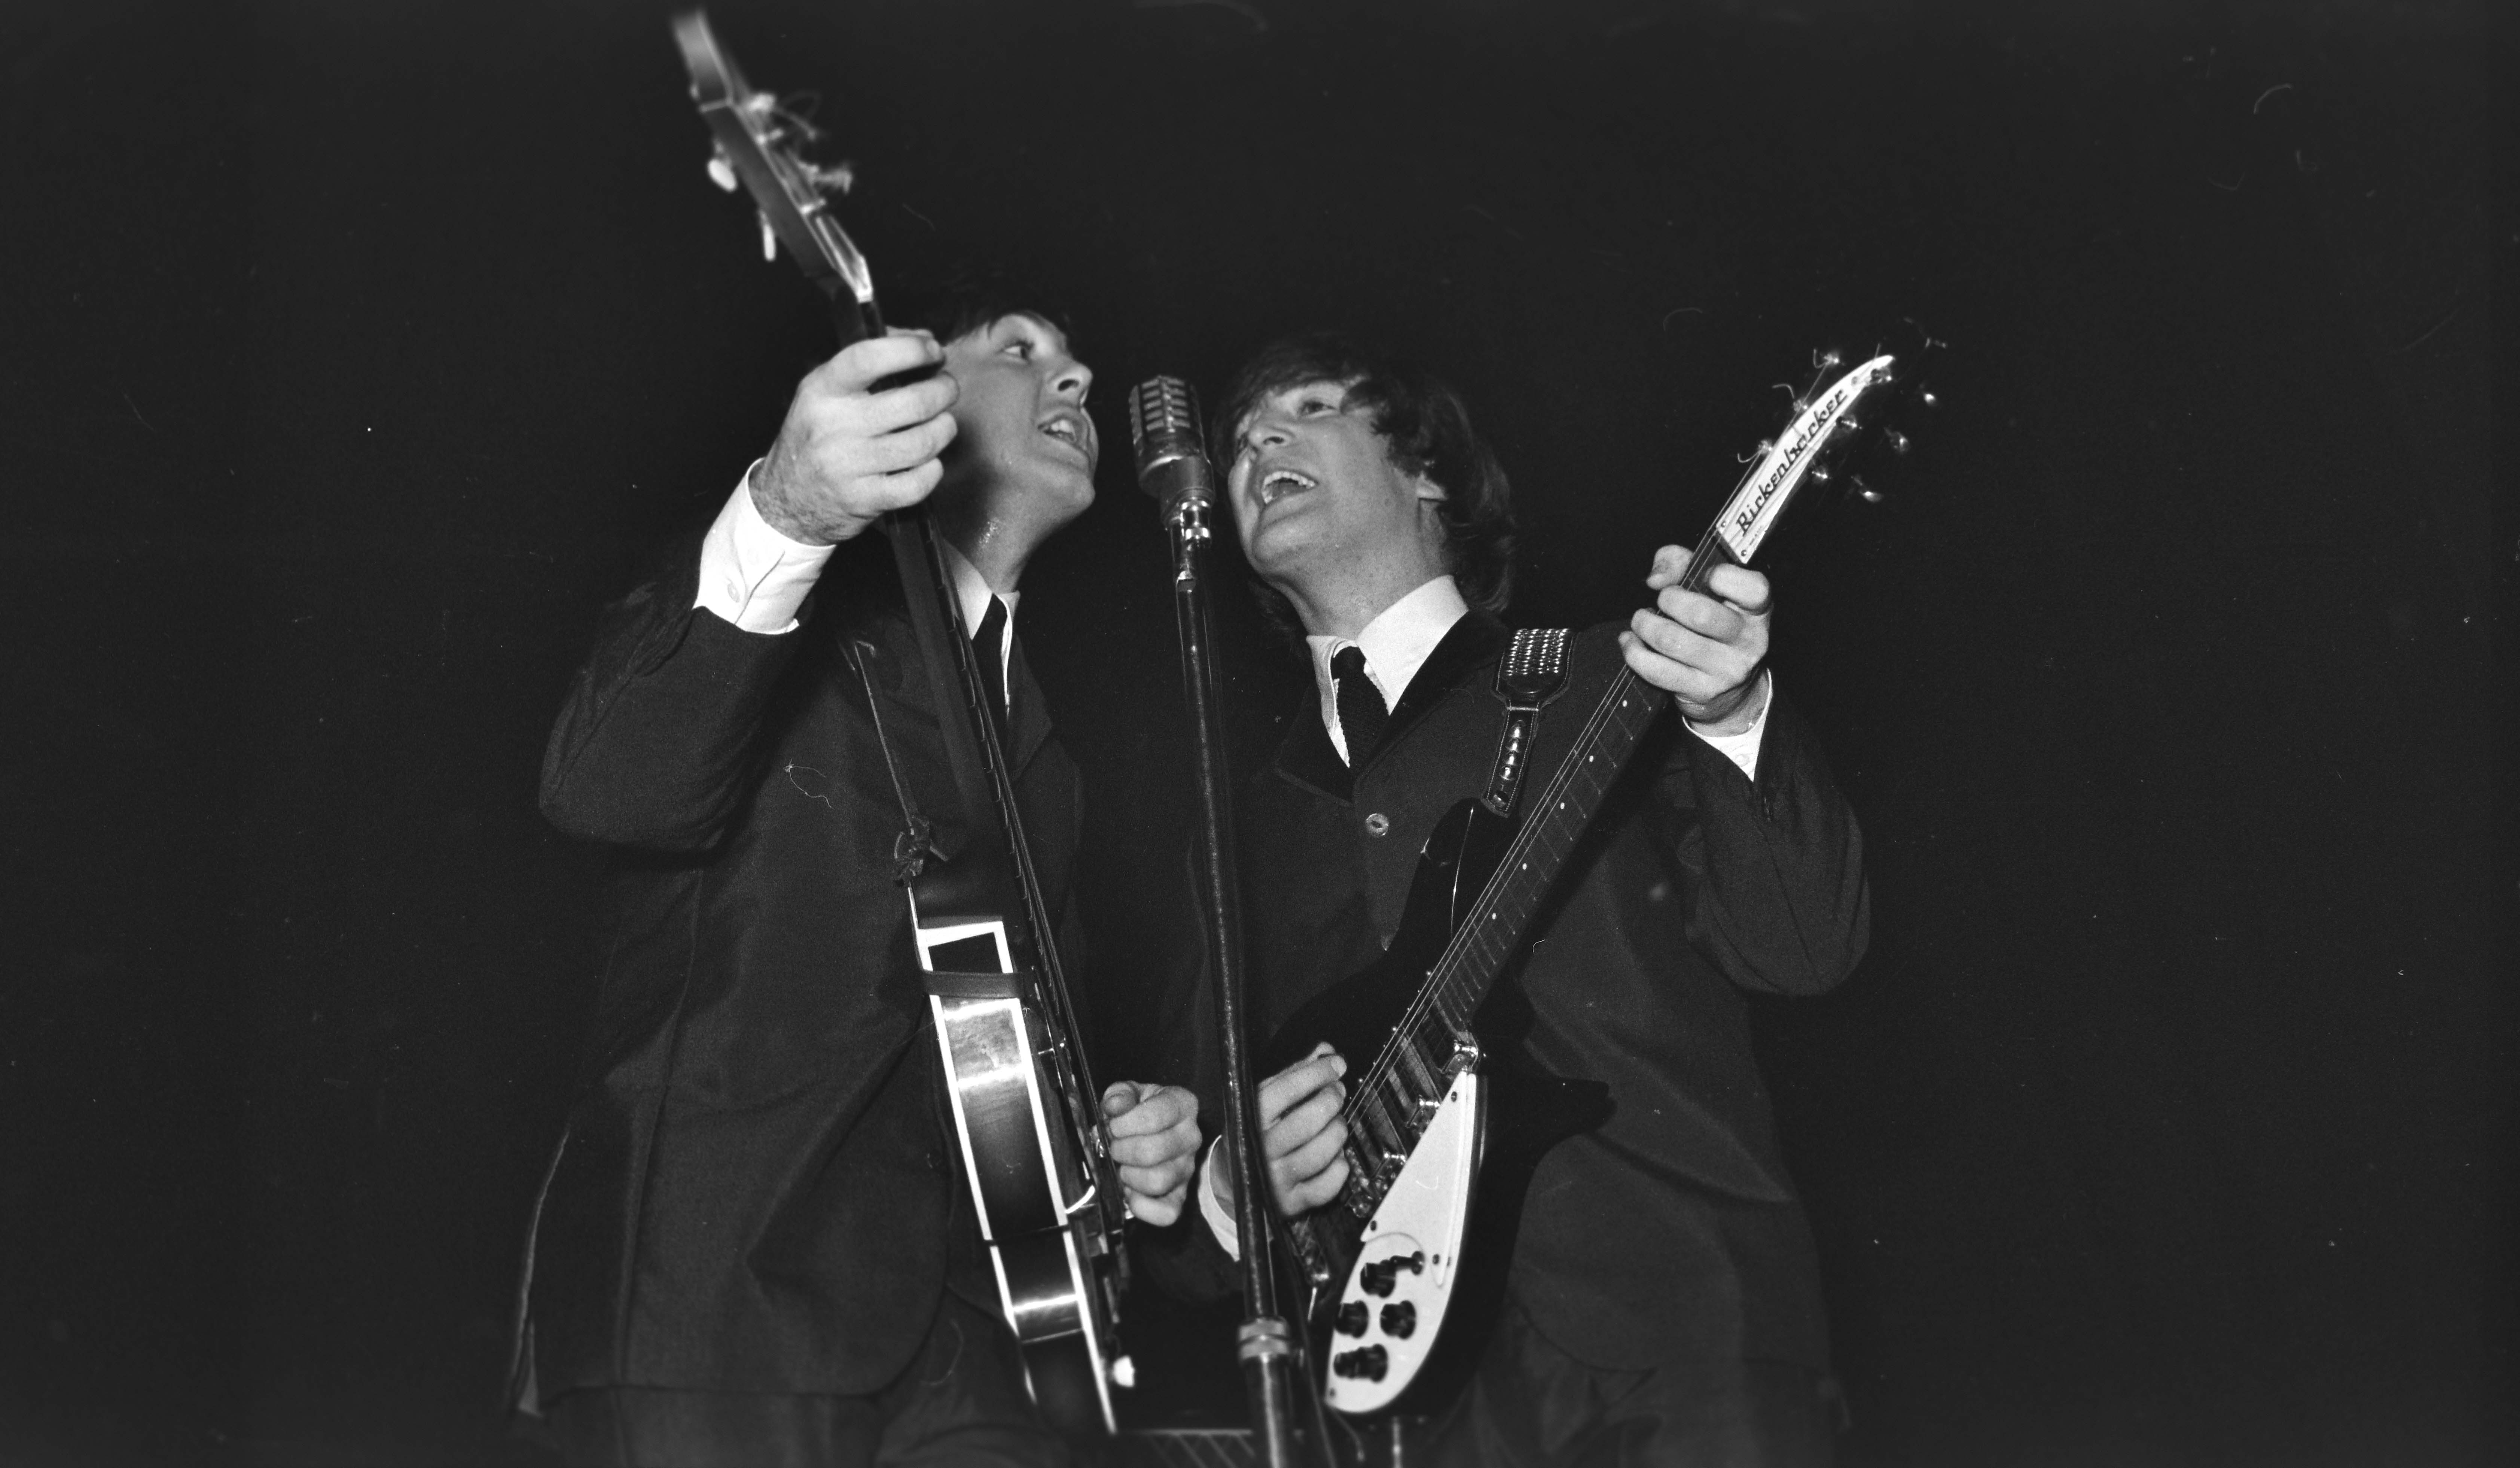 Paul McCartney and John Lennon on stage at the Caird Hall in 1964.